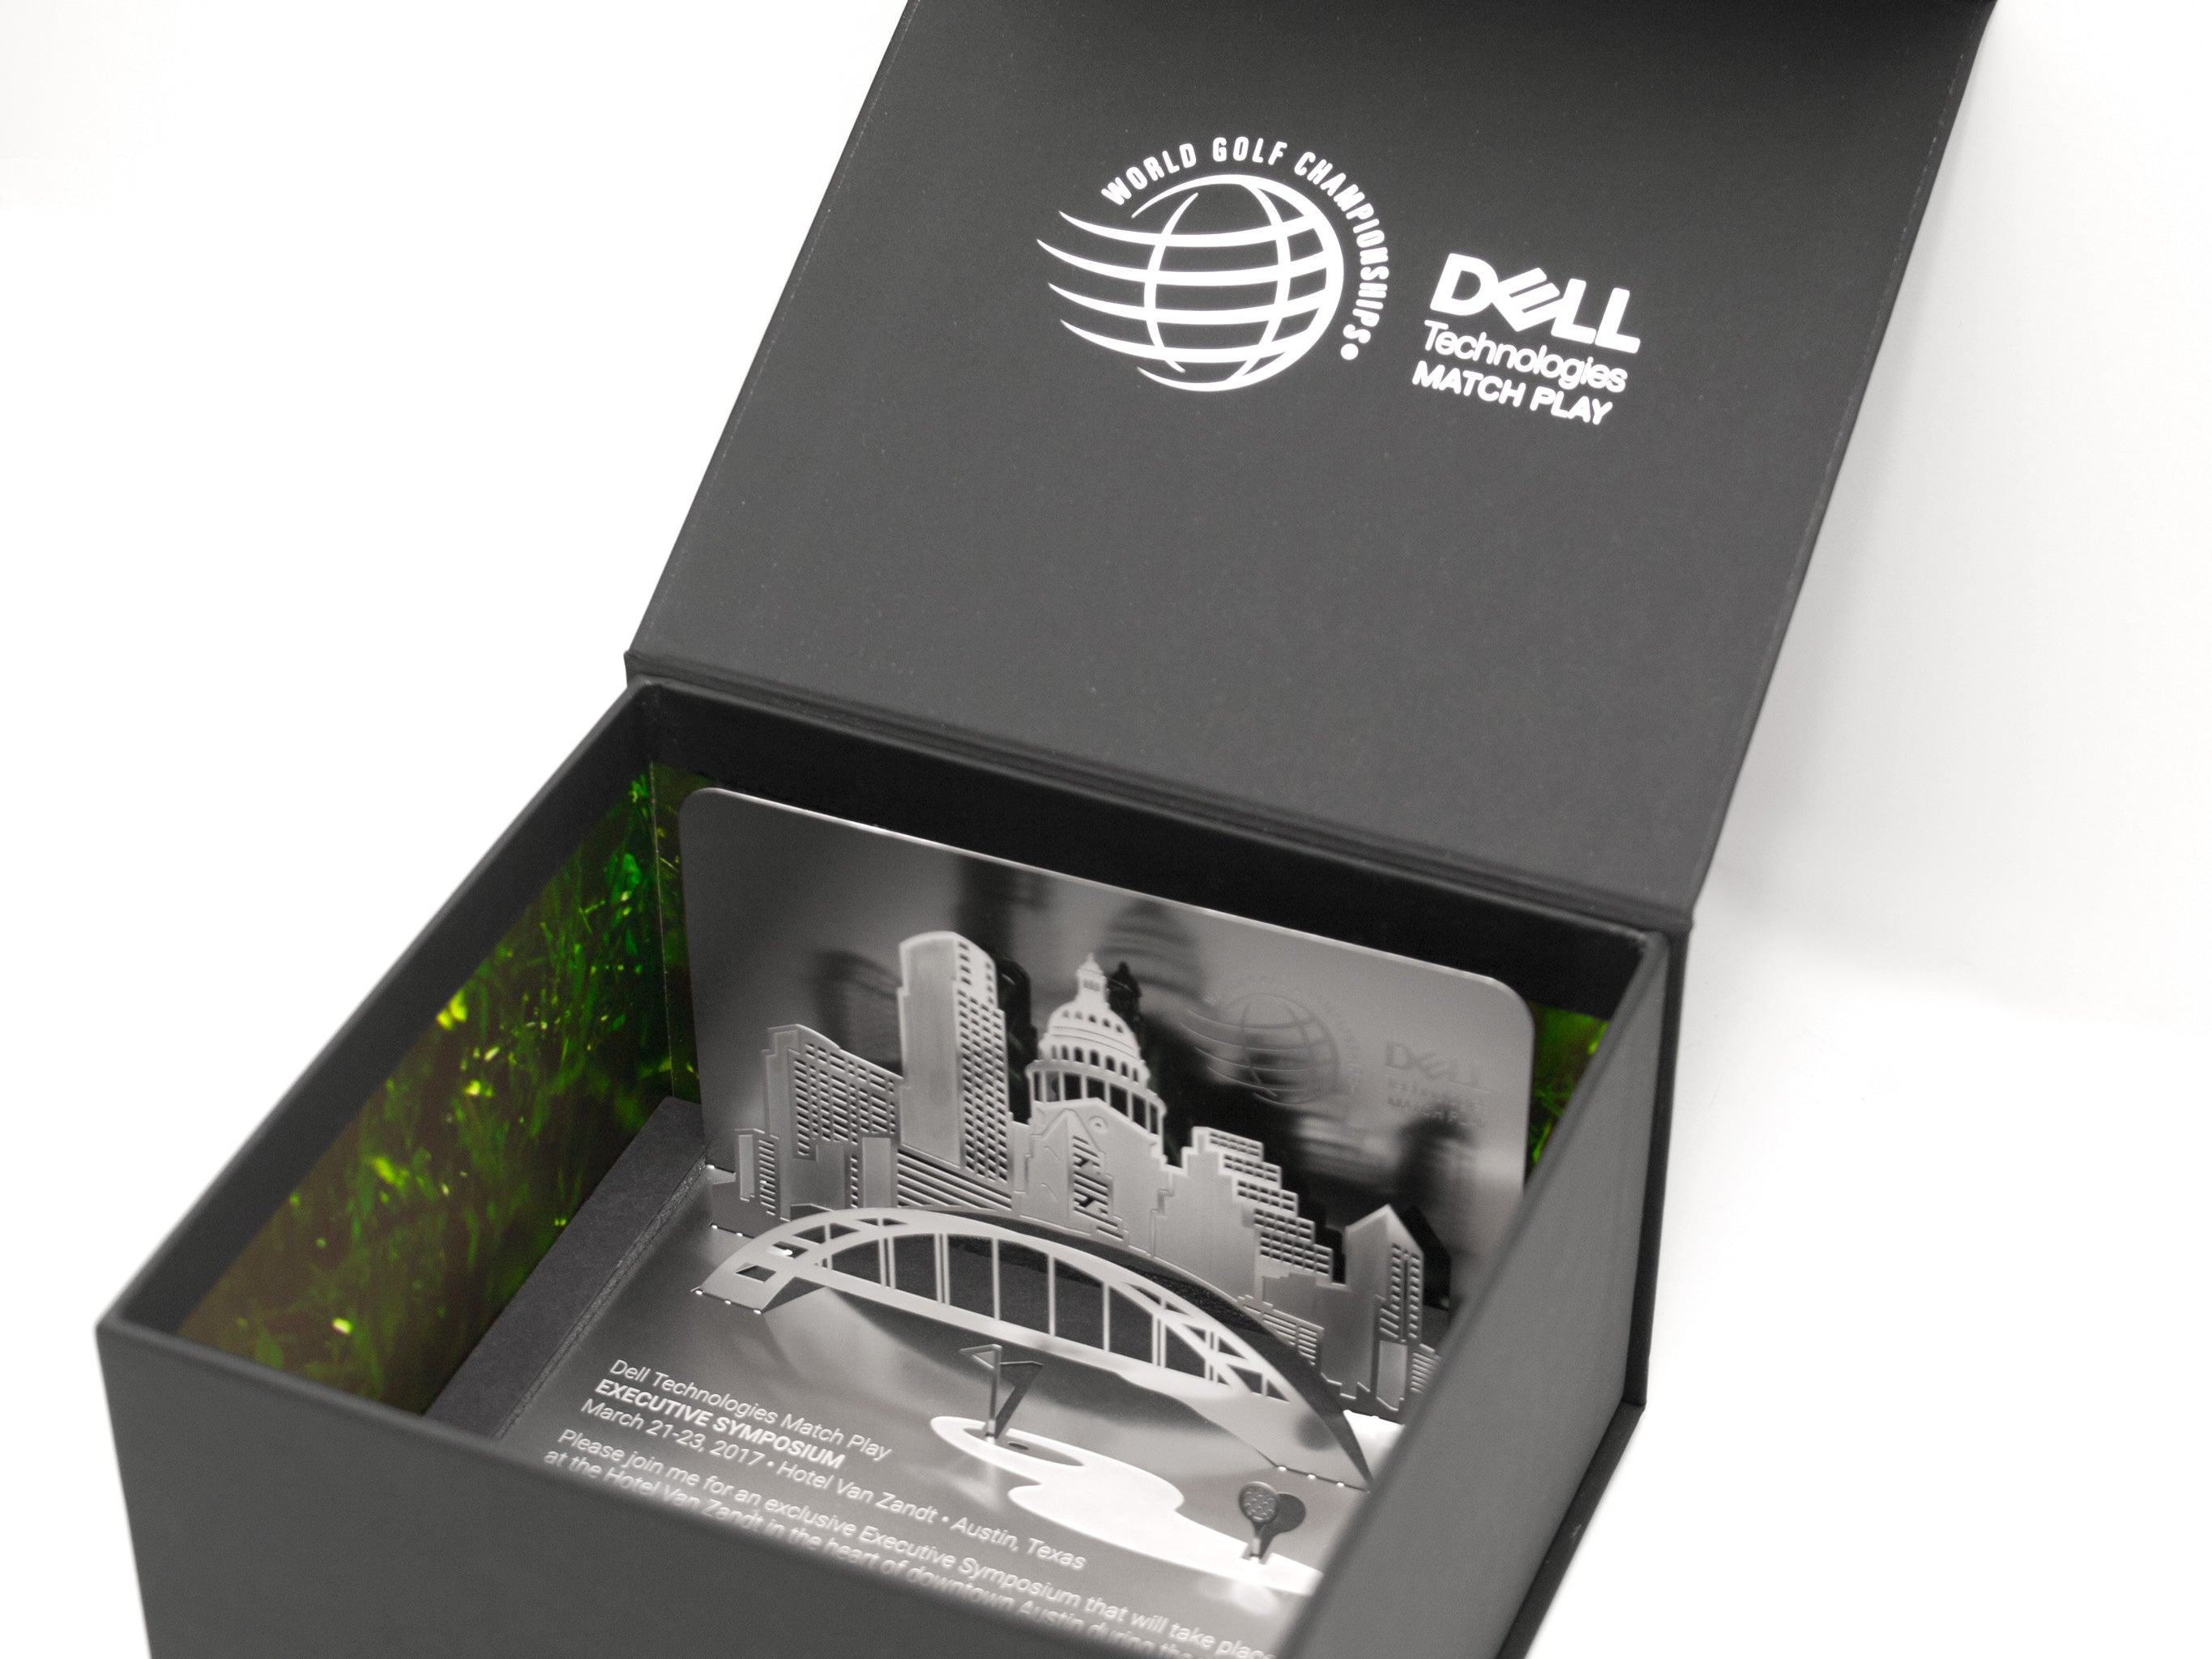 Dell Matchplay Folded Metal Corporate Invitation In Box3